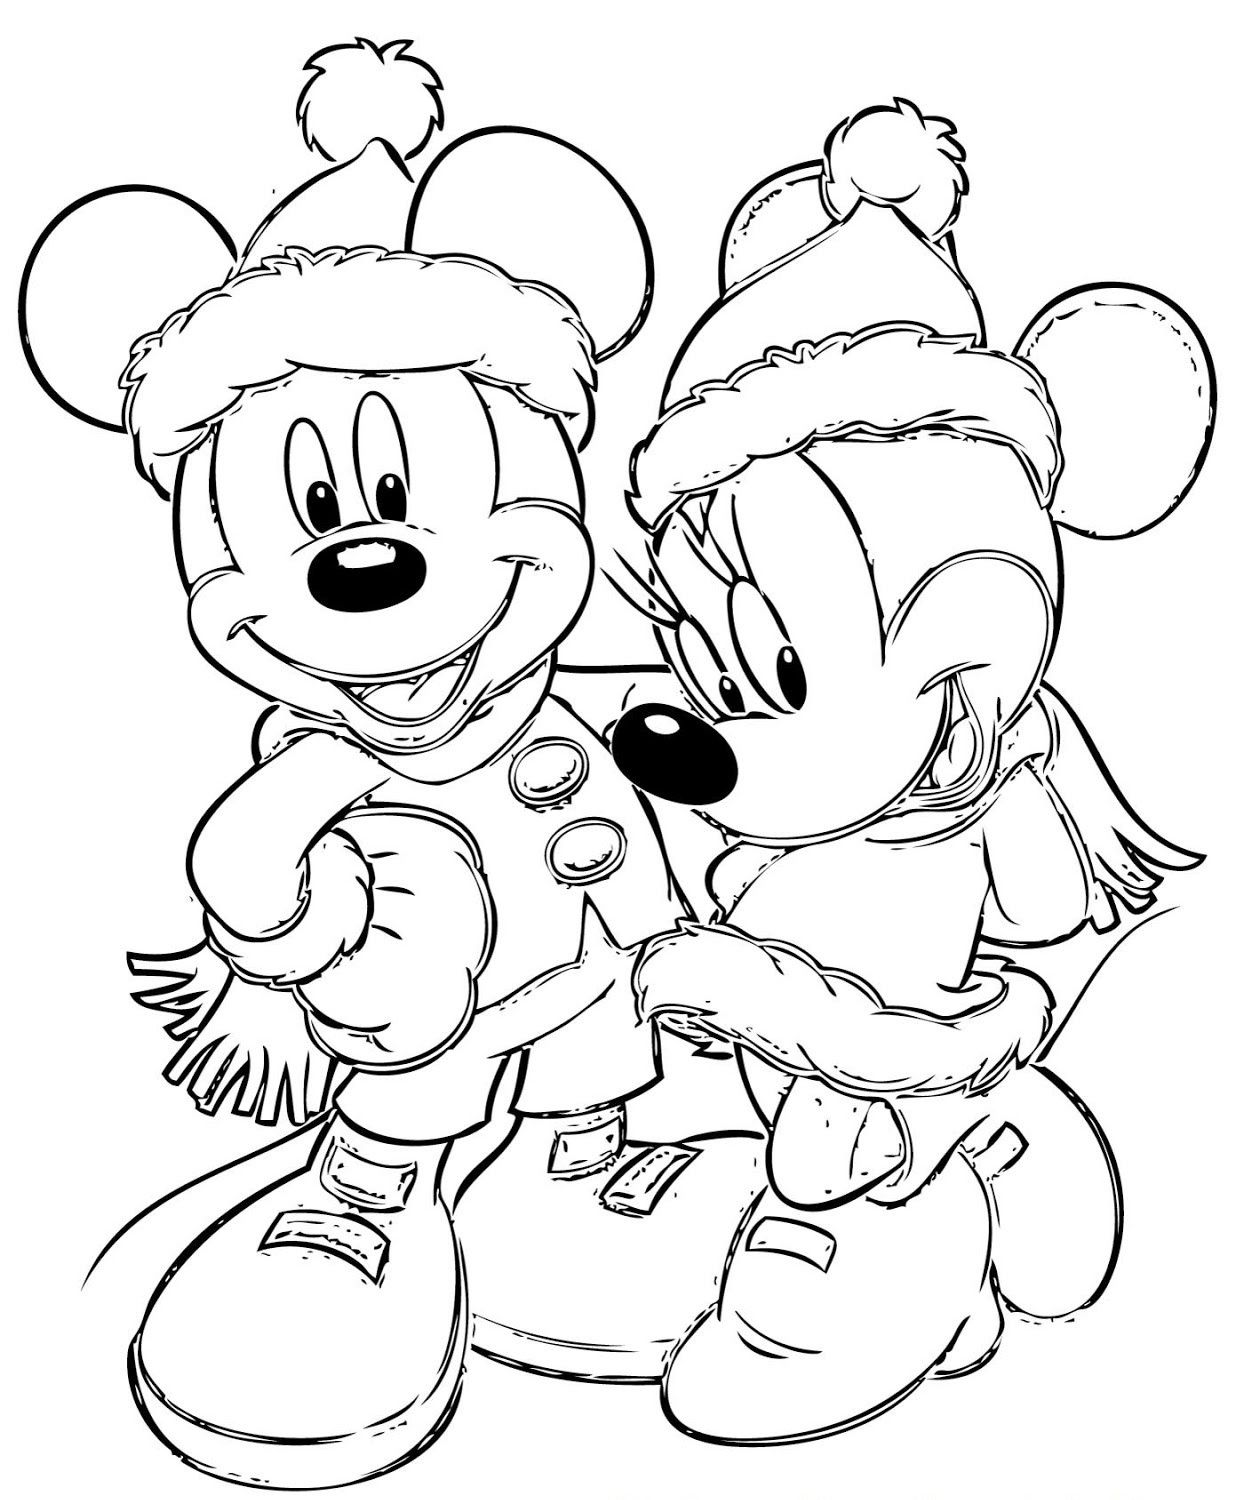 Free minnie mouse coloring pages image gianfreda net news to go